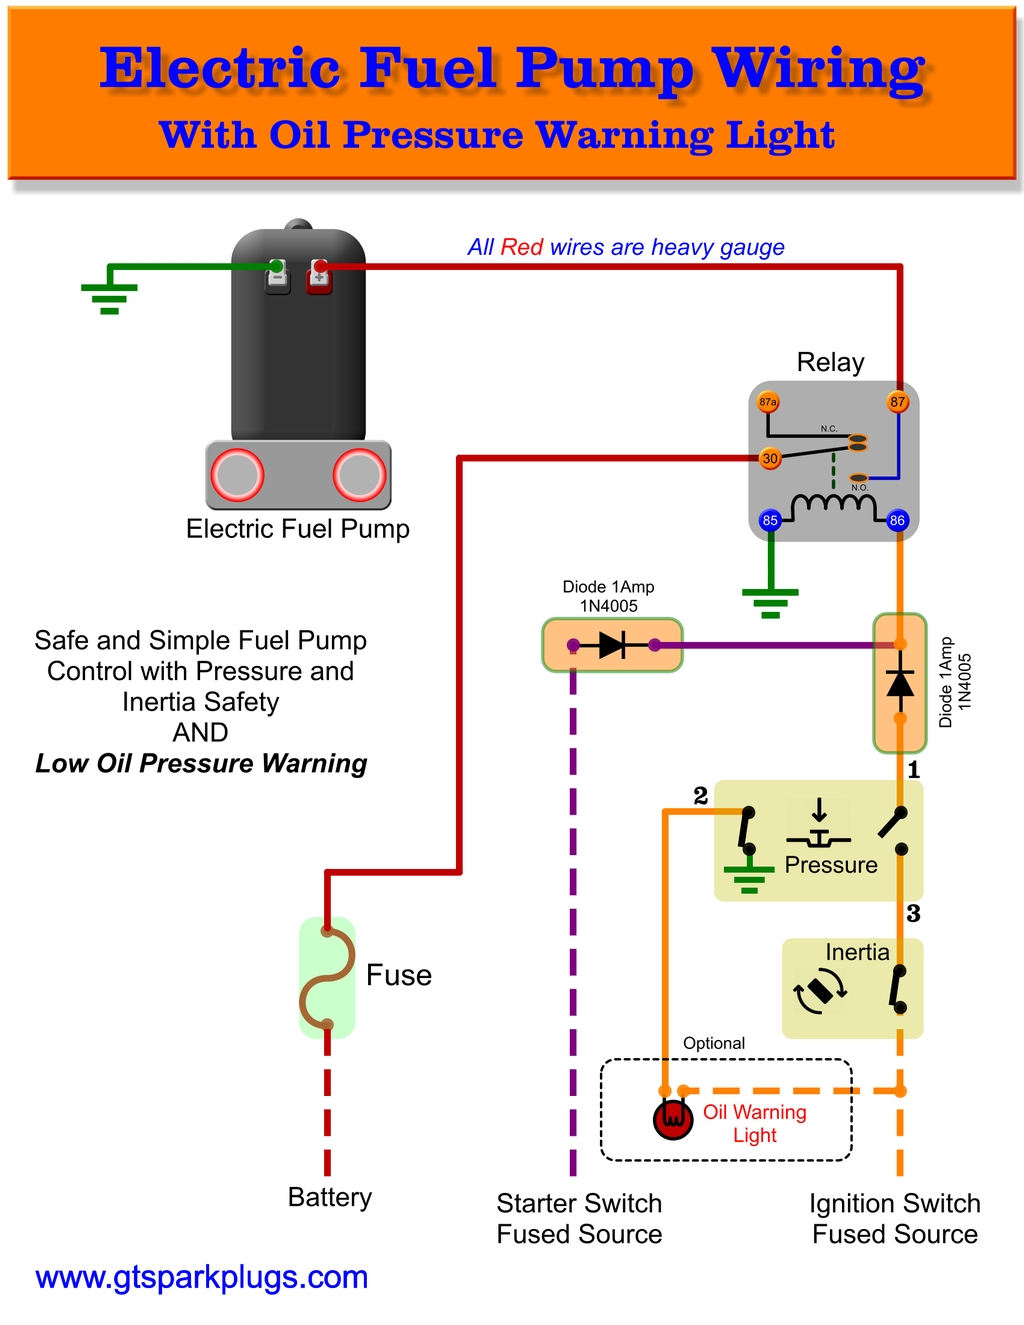 Electric Fuel Pump Wiring - Data Wiring Diagram Detailed - Electric Fuel Pump Wiring Diagram